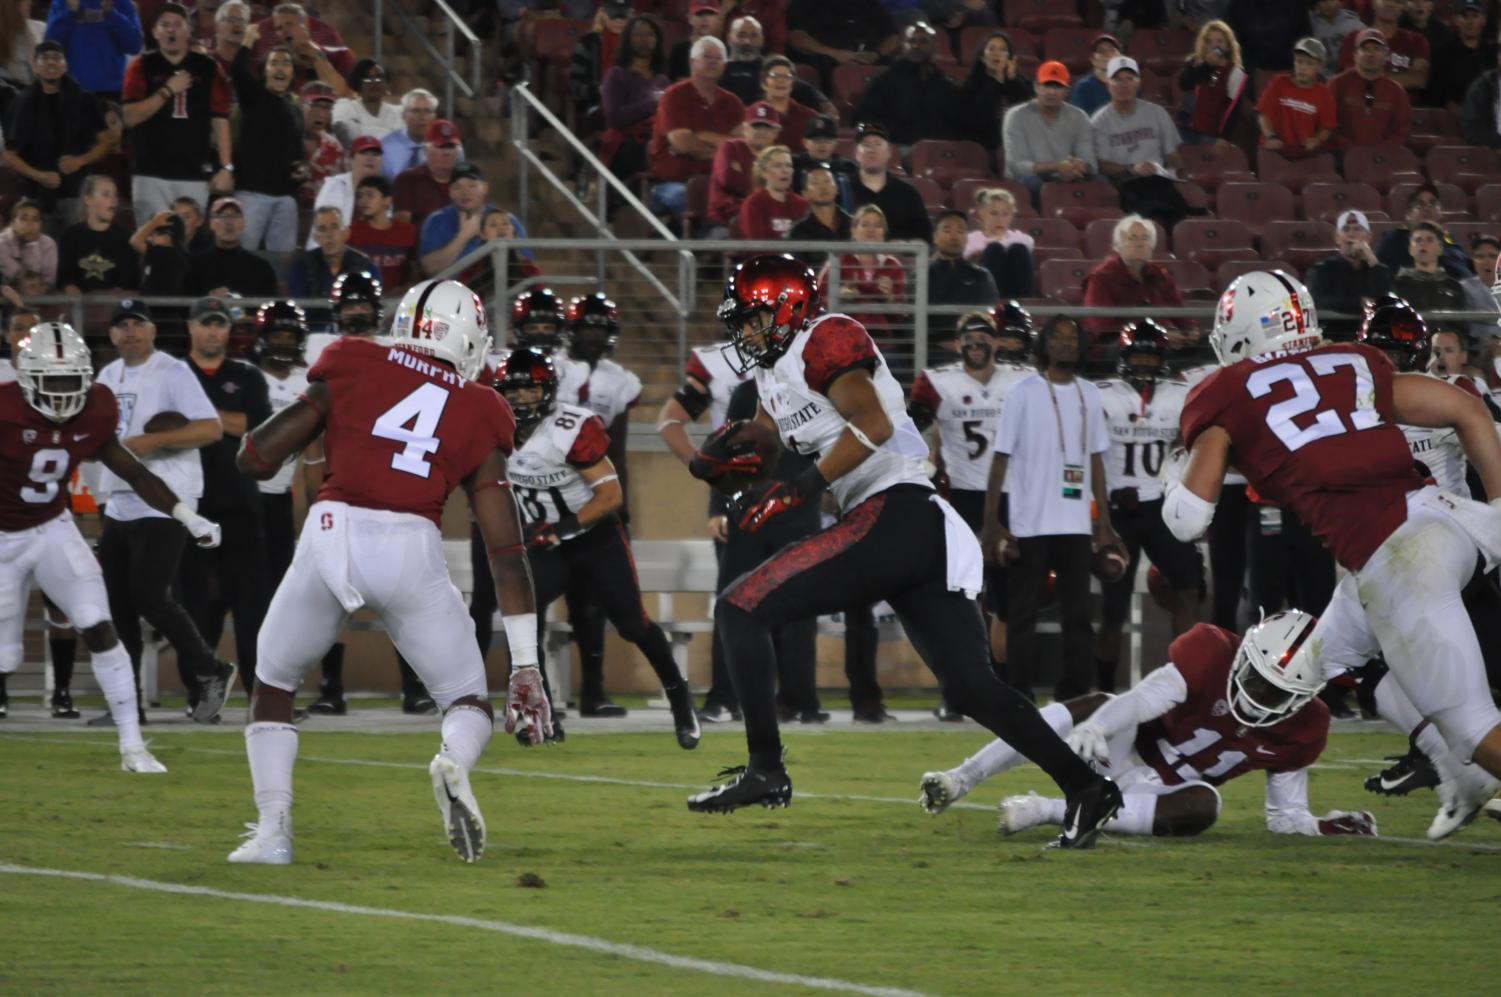 Sophomore wide receiver Tim Wilson Jr. runs after the catch during the Aztecs 31-10 loss to Stanford on Aug. 31 at Stanford Stadium.